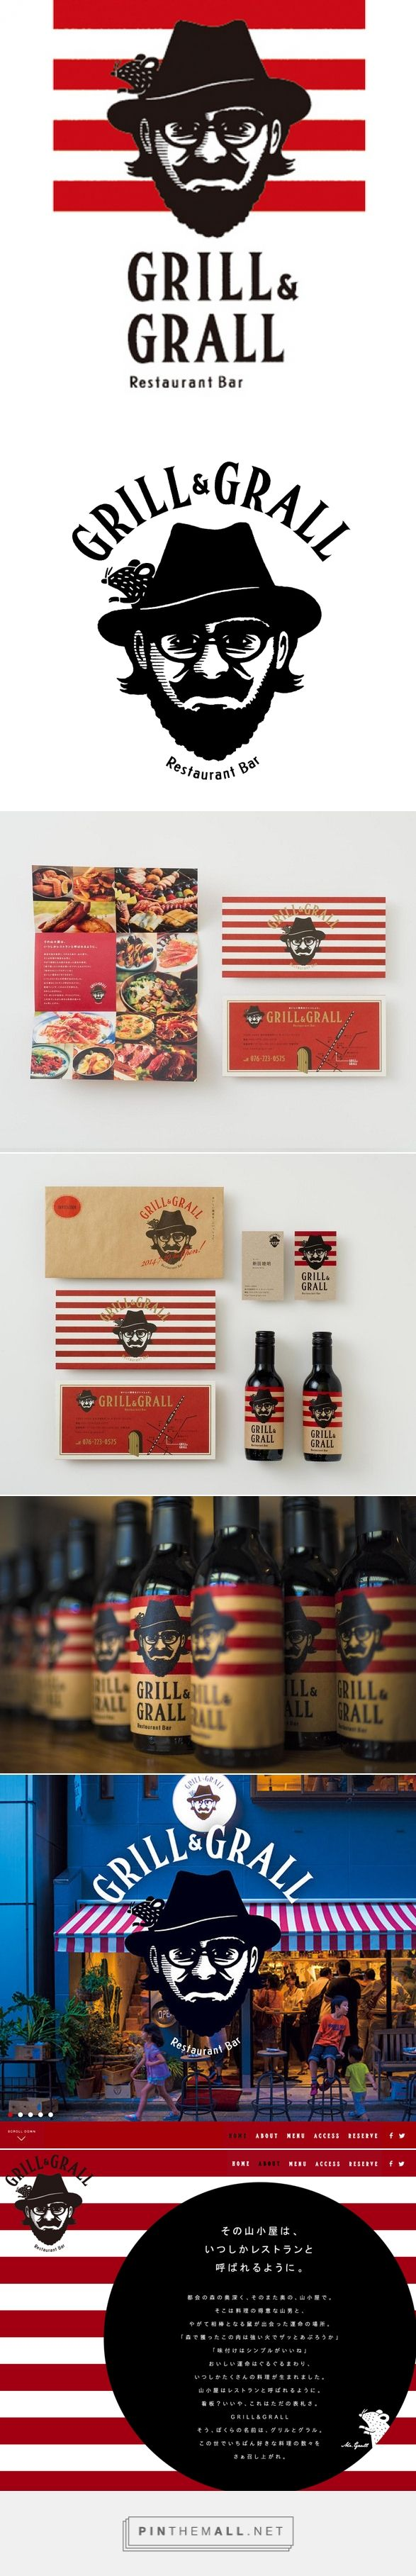 GRILL&GRALL - エイプリル via April curated by Packaging Diva PD. Restaurant bar branding and coordinated packaging.